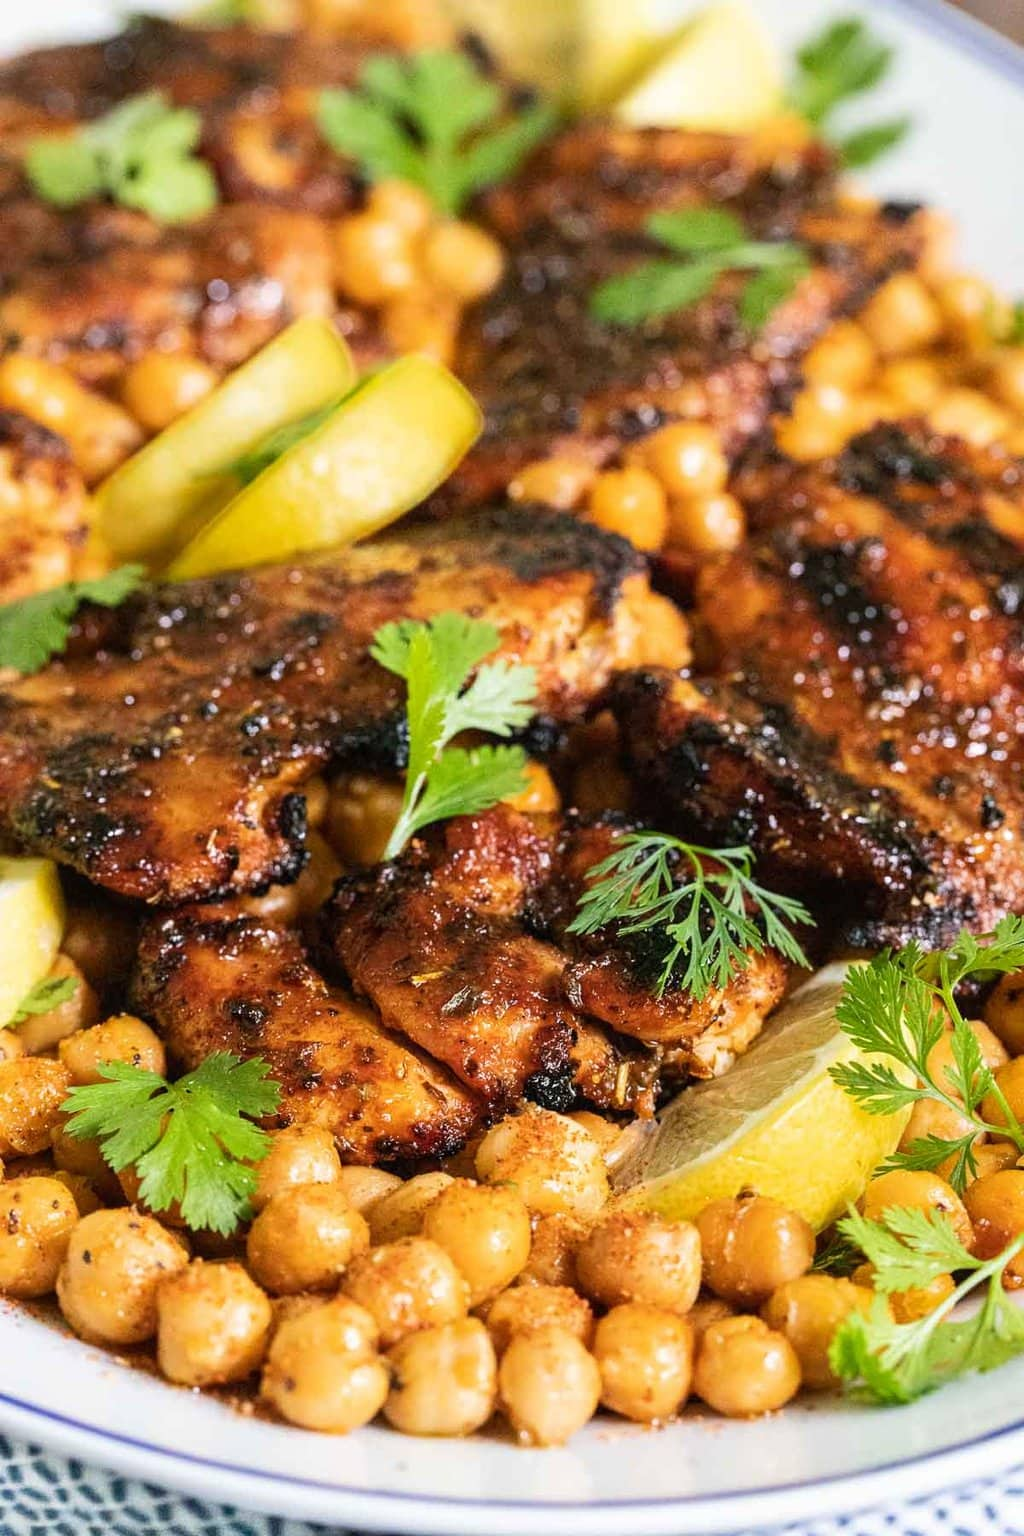 Vertical closeup photo of a serving platter of Charred Honey Lemon Grilled Chicken with Crispy Chickpeas.